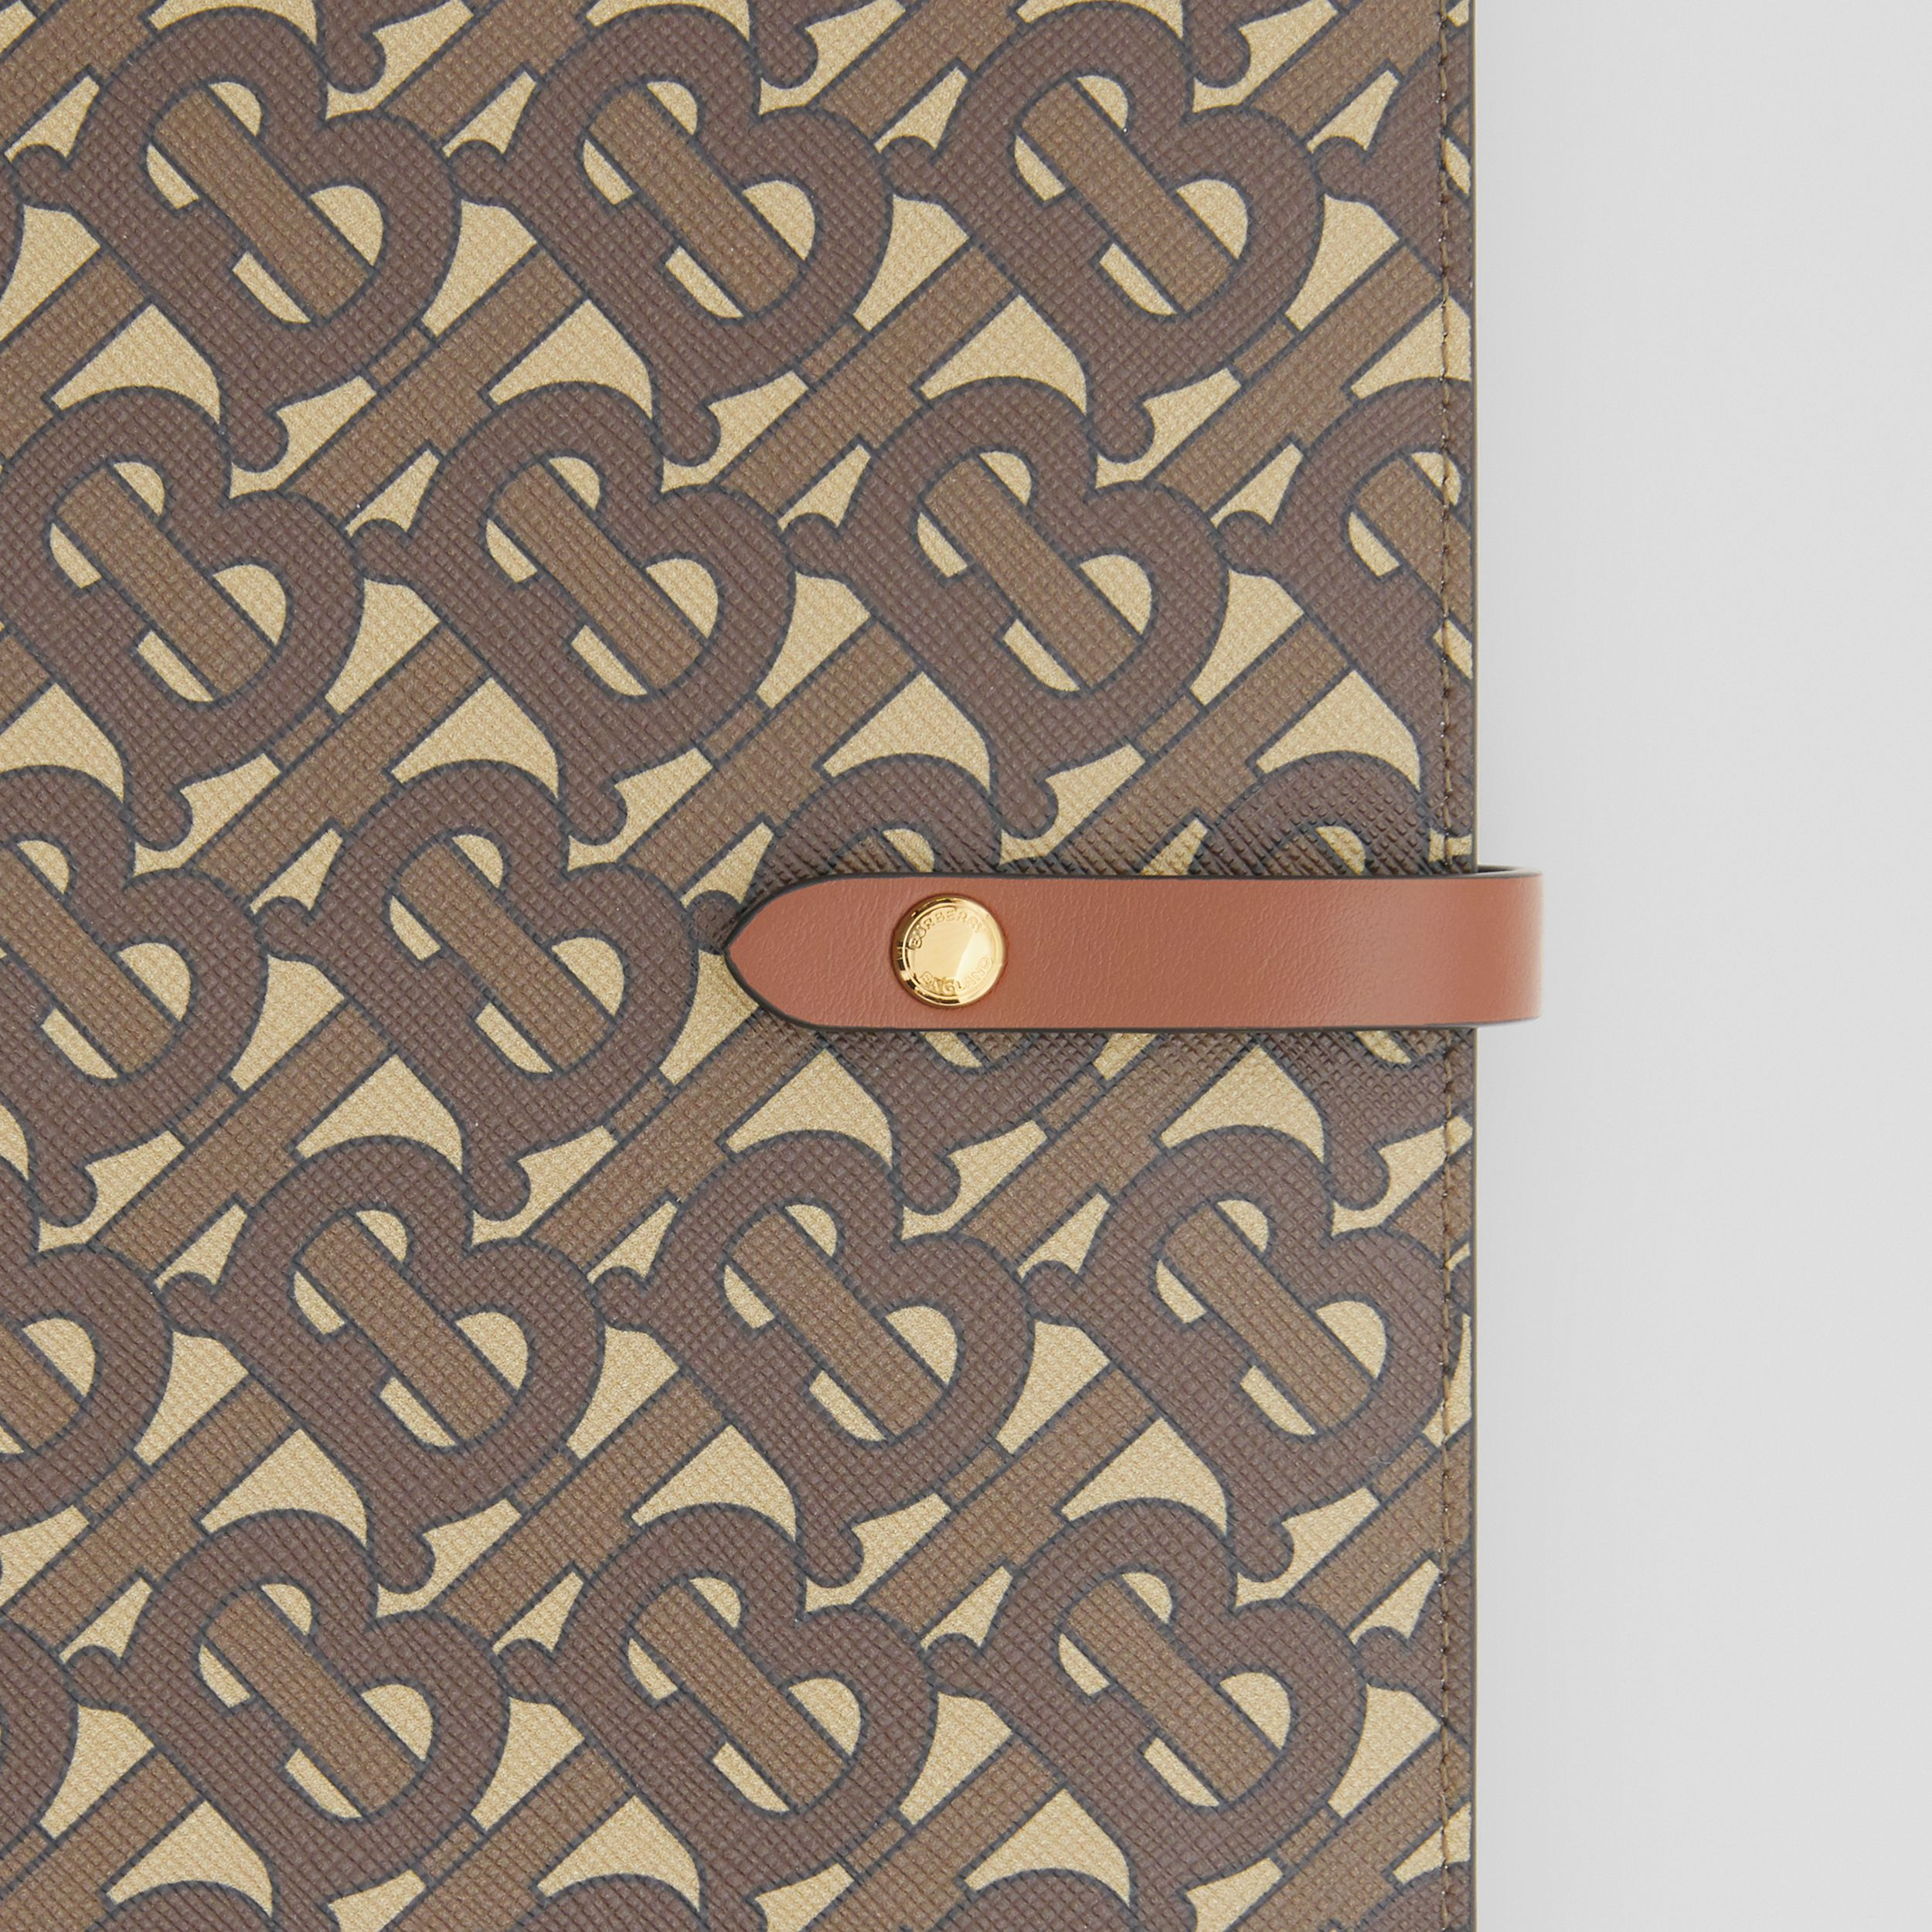 Monogram Print E-canvas Notebook Cover in Bridle Brown | Burberry - 2